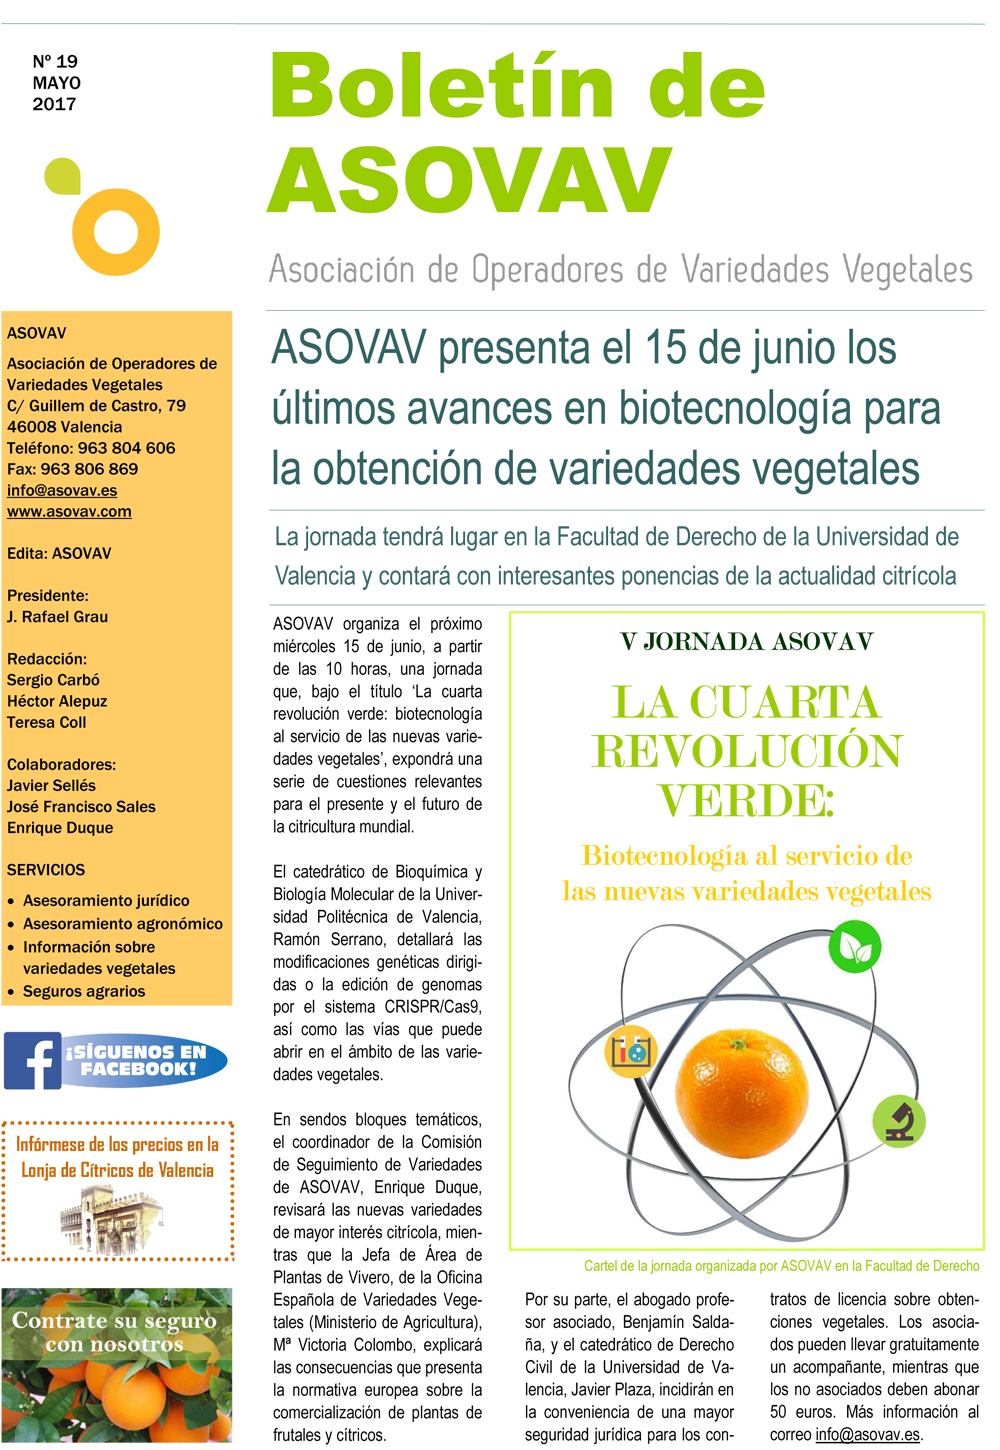 Boletin_ASOVAV_mayo_2017_modificado